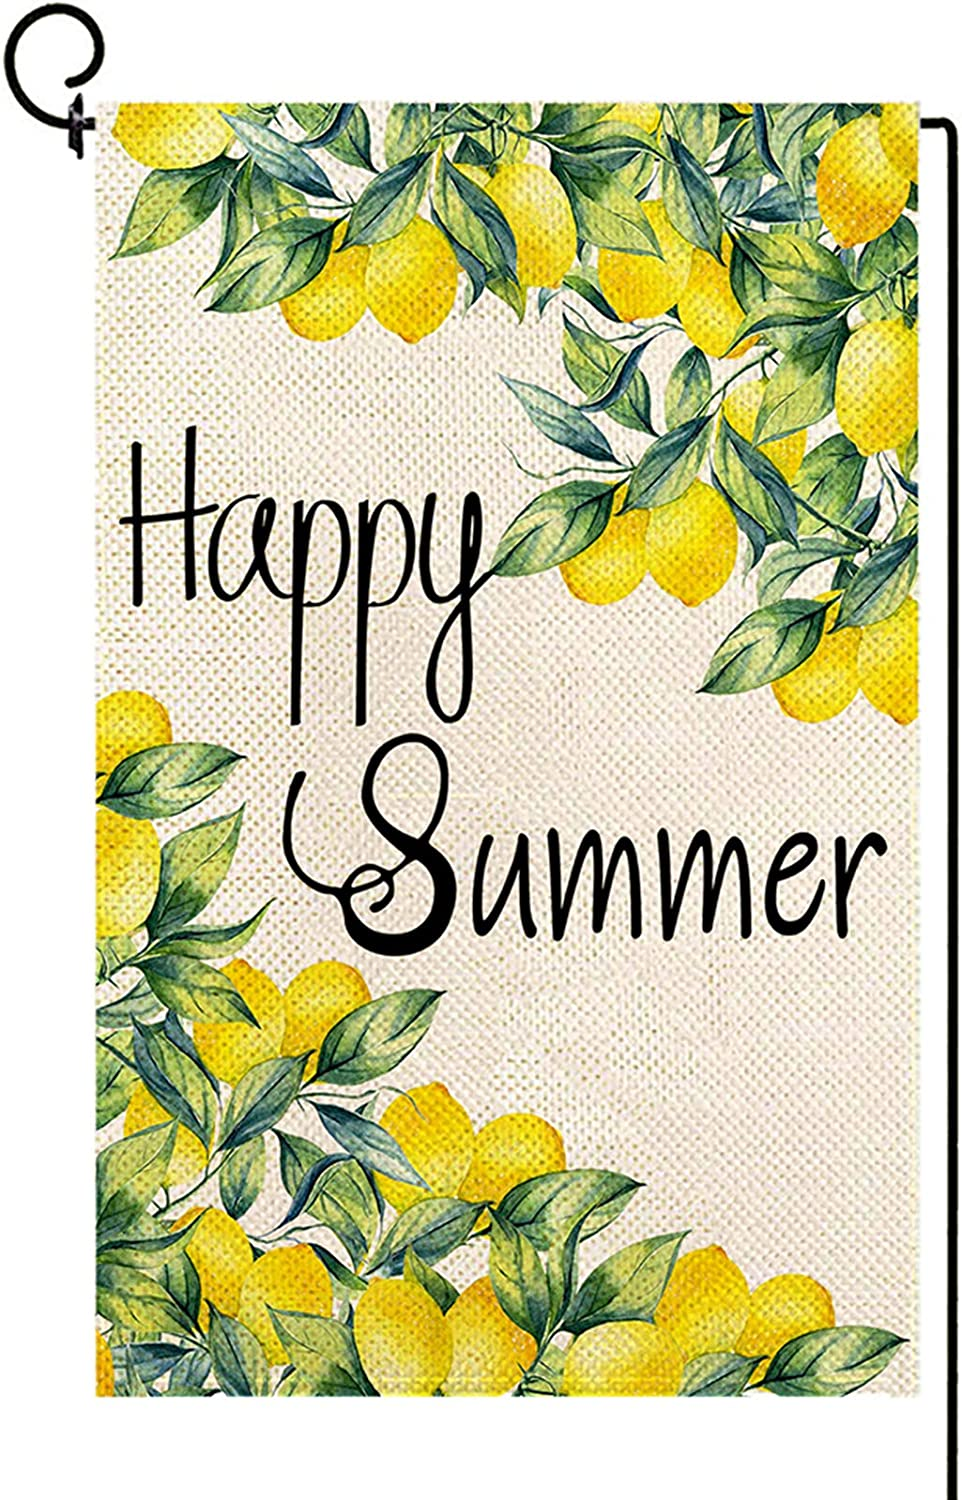 Baccessor Happy Summer Garden Flag Double Sized Summer Lemon Welcome Small Burlap Vertical Yard Flag for Seasonal Farmhouse Rustic Outdoor Outside Lawn Decoration 12 x 18 Inch